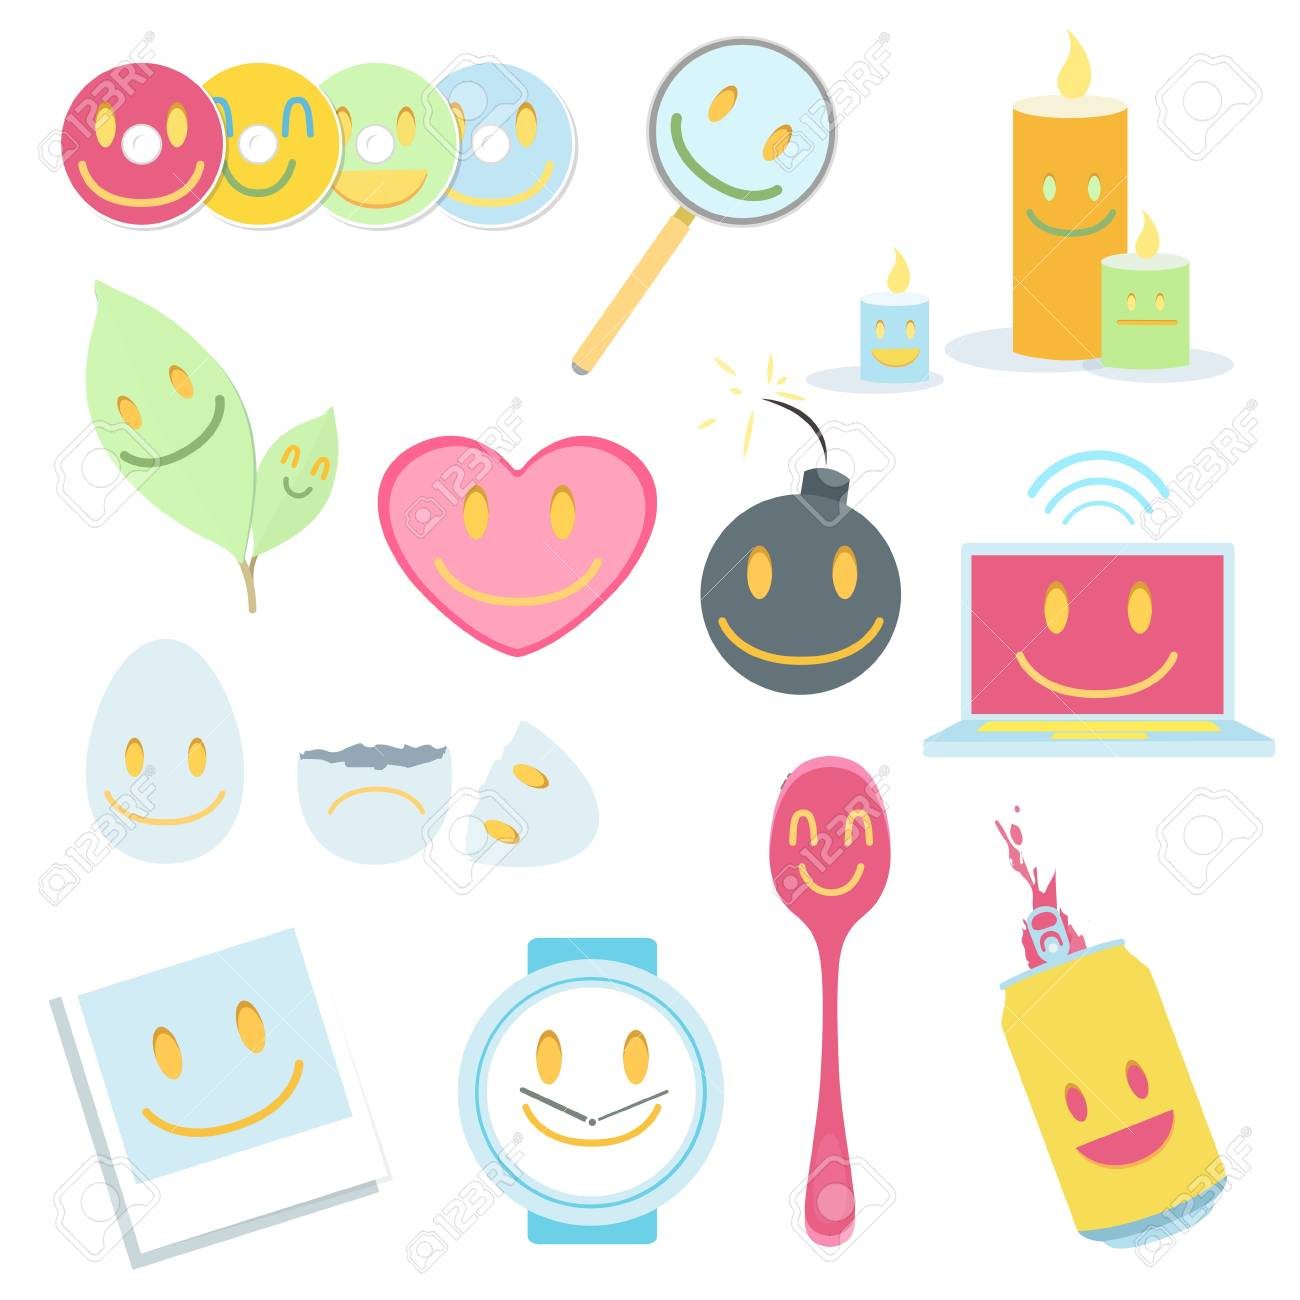 Collection of icons on white background Stock Vector - 20198733